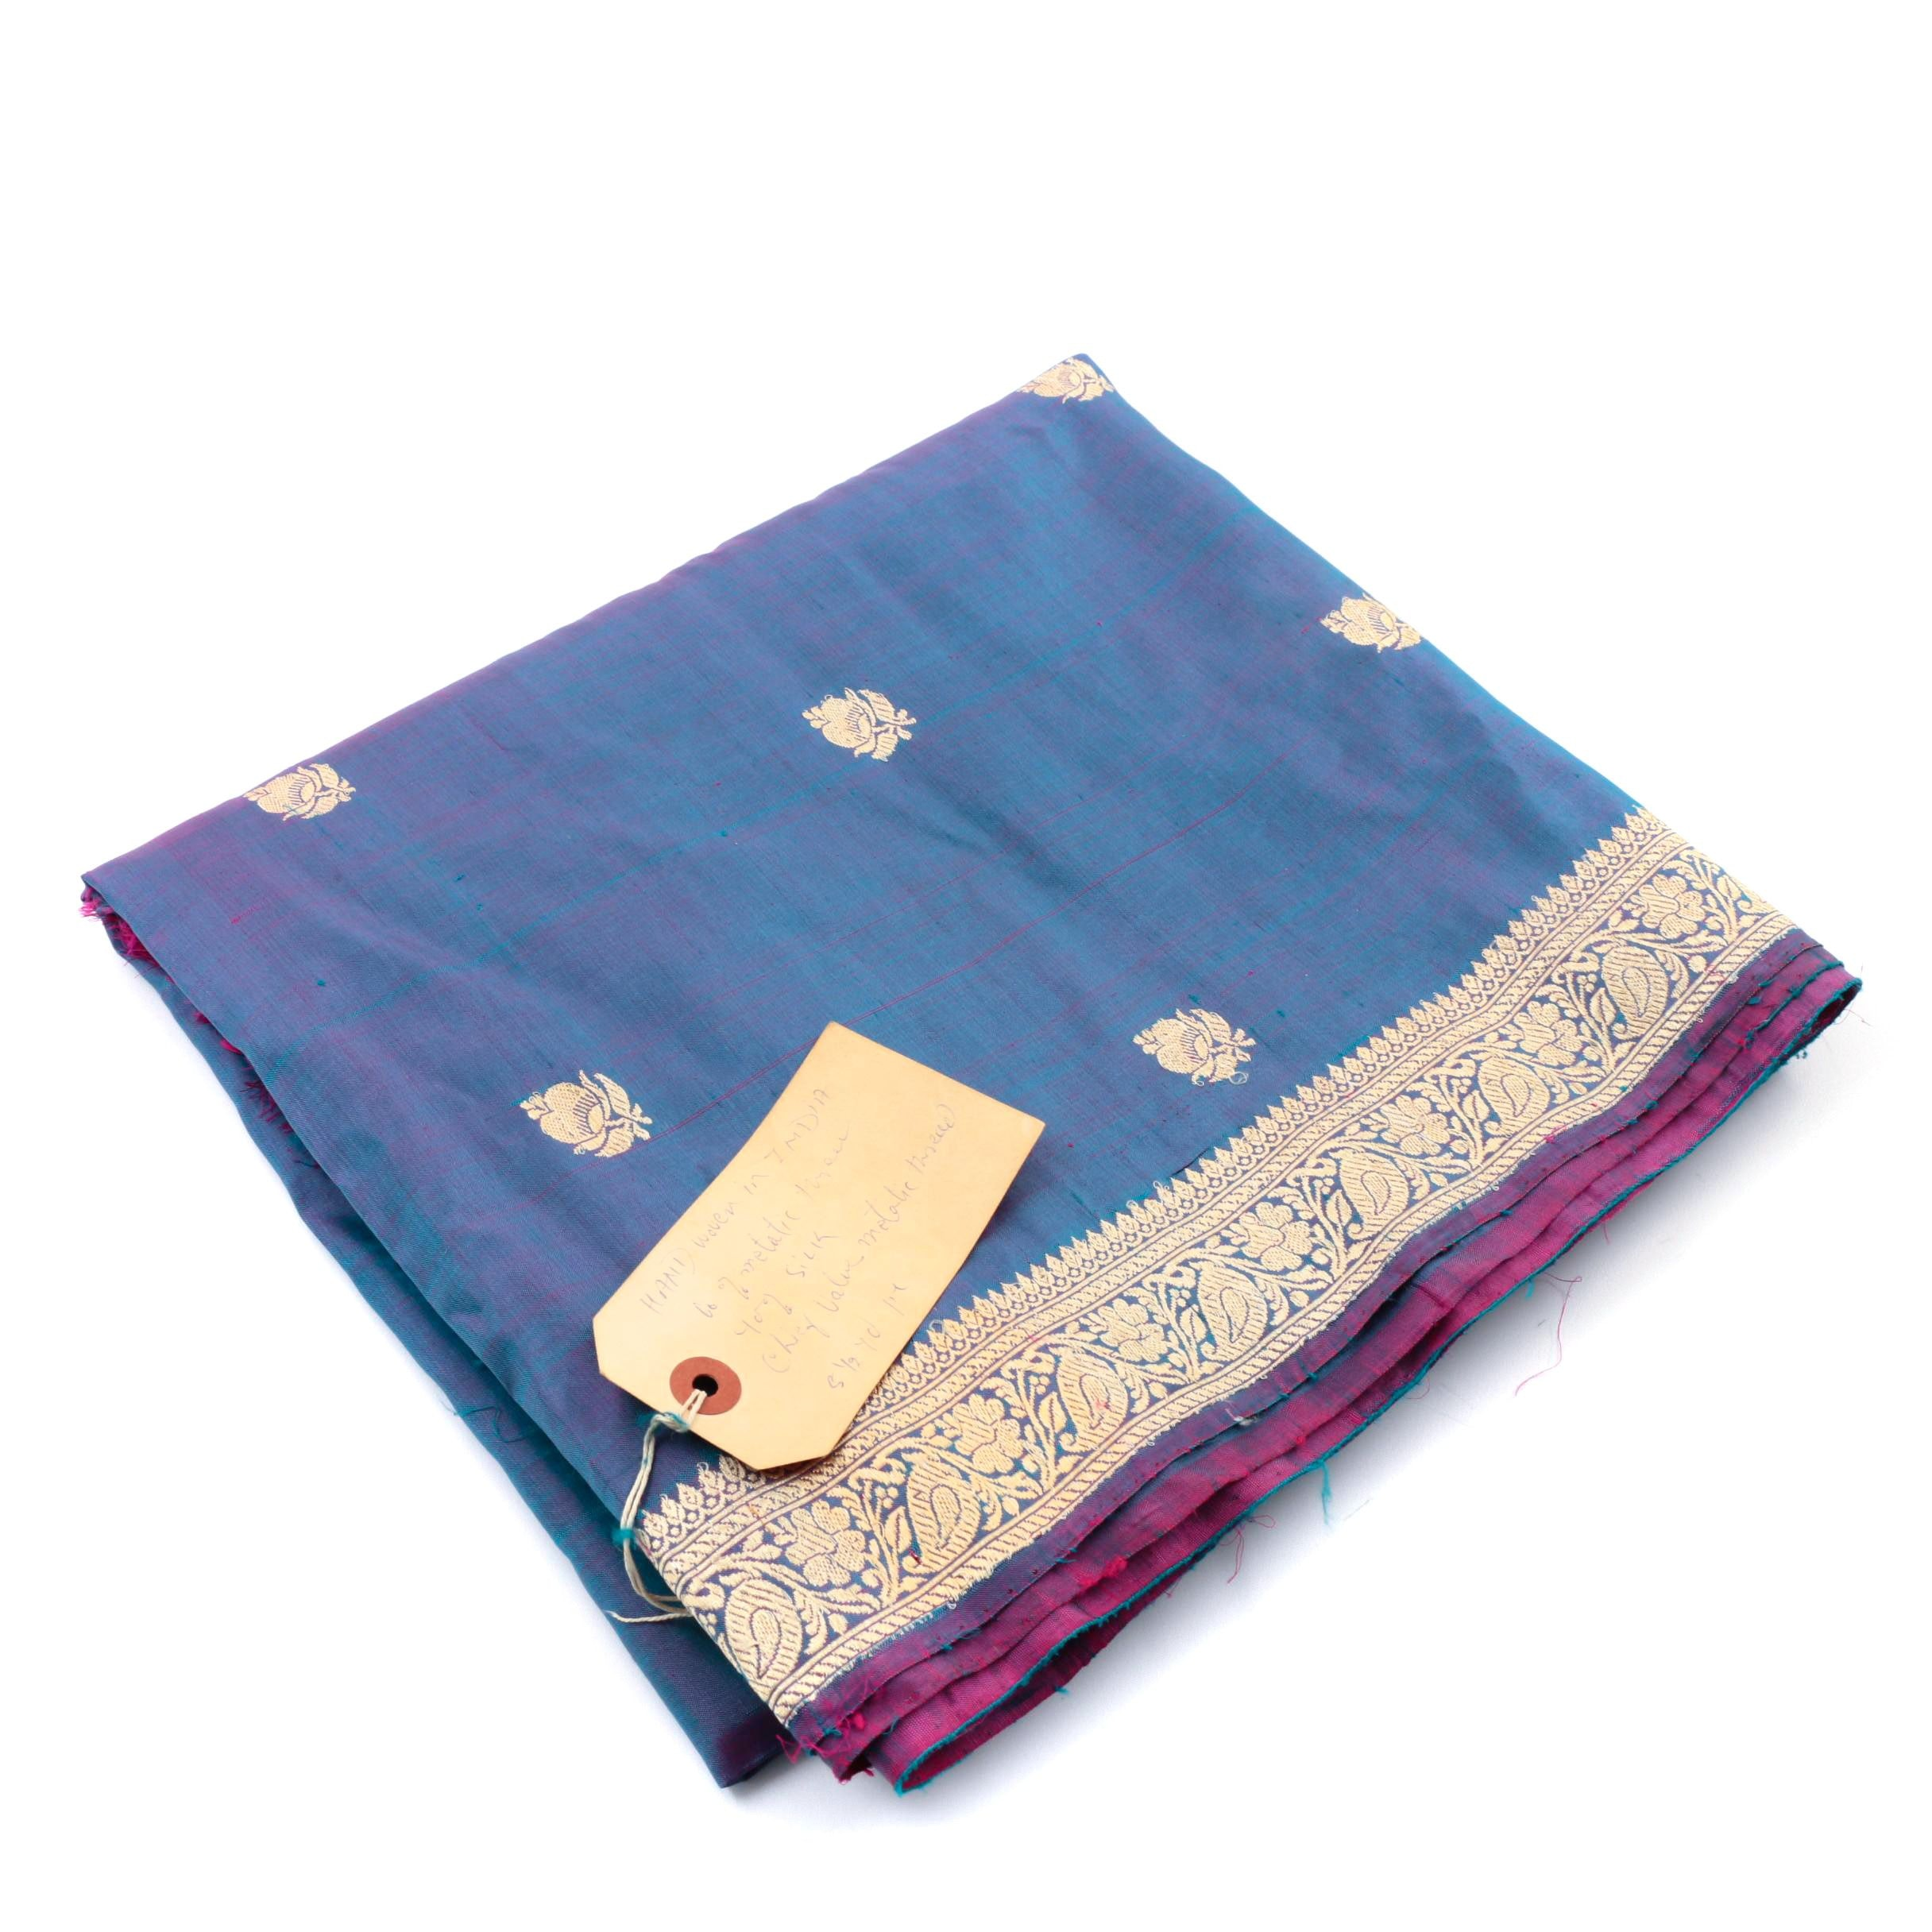 Vintage Iridescent Purple, Blue and Gold Hand Woven Silk Sari, Made in India